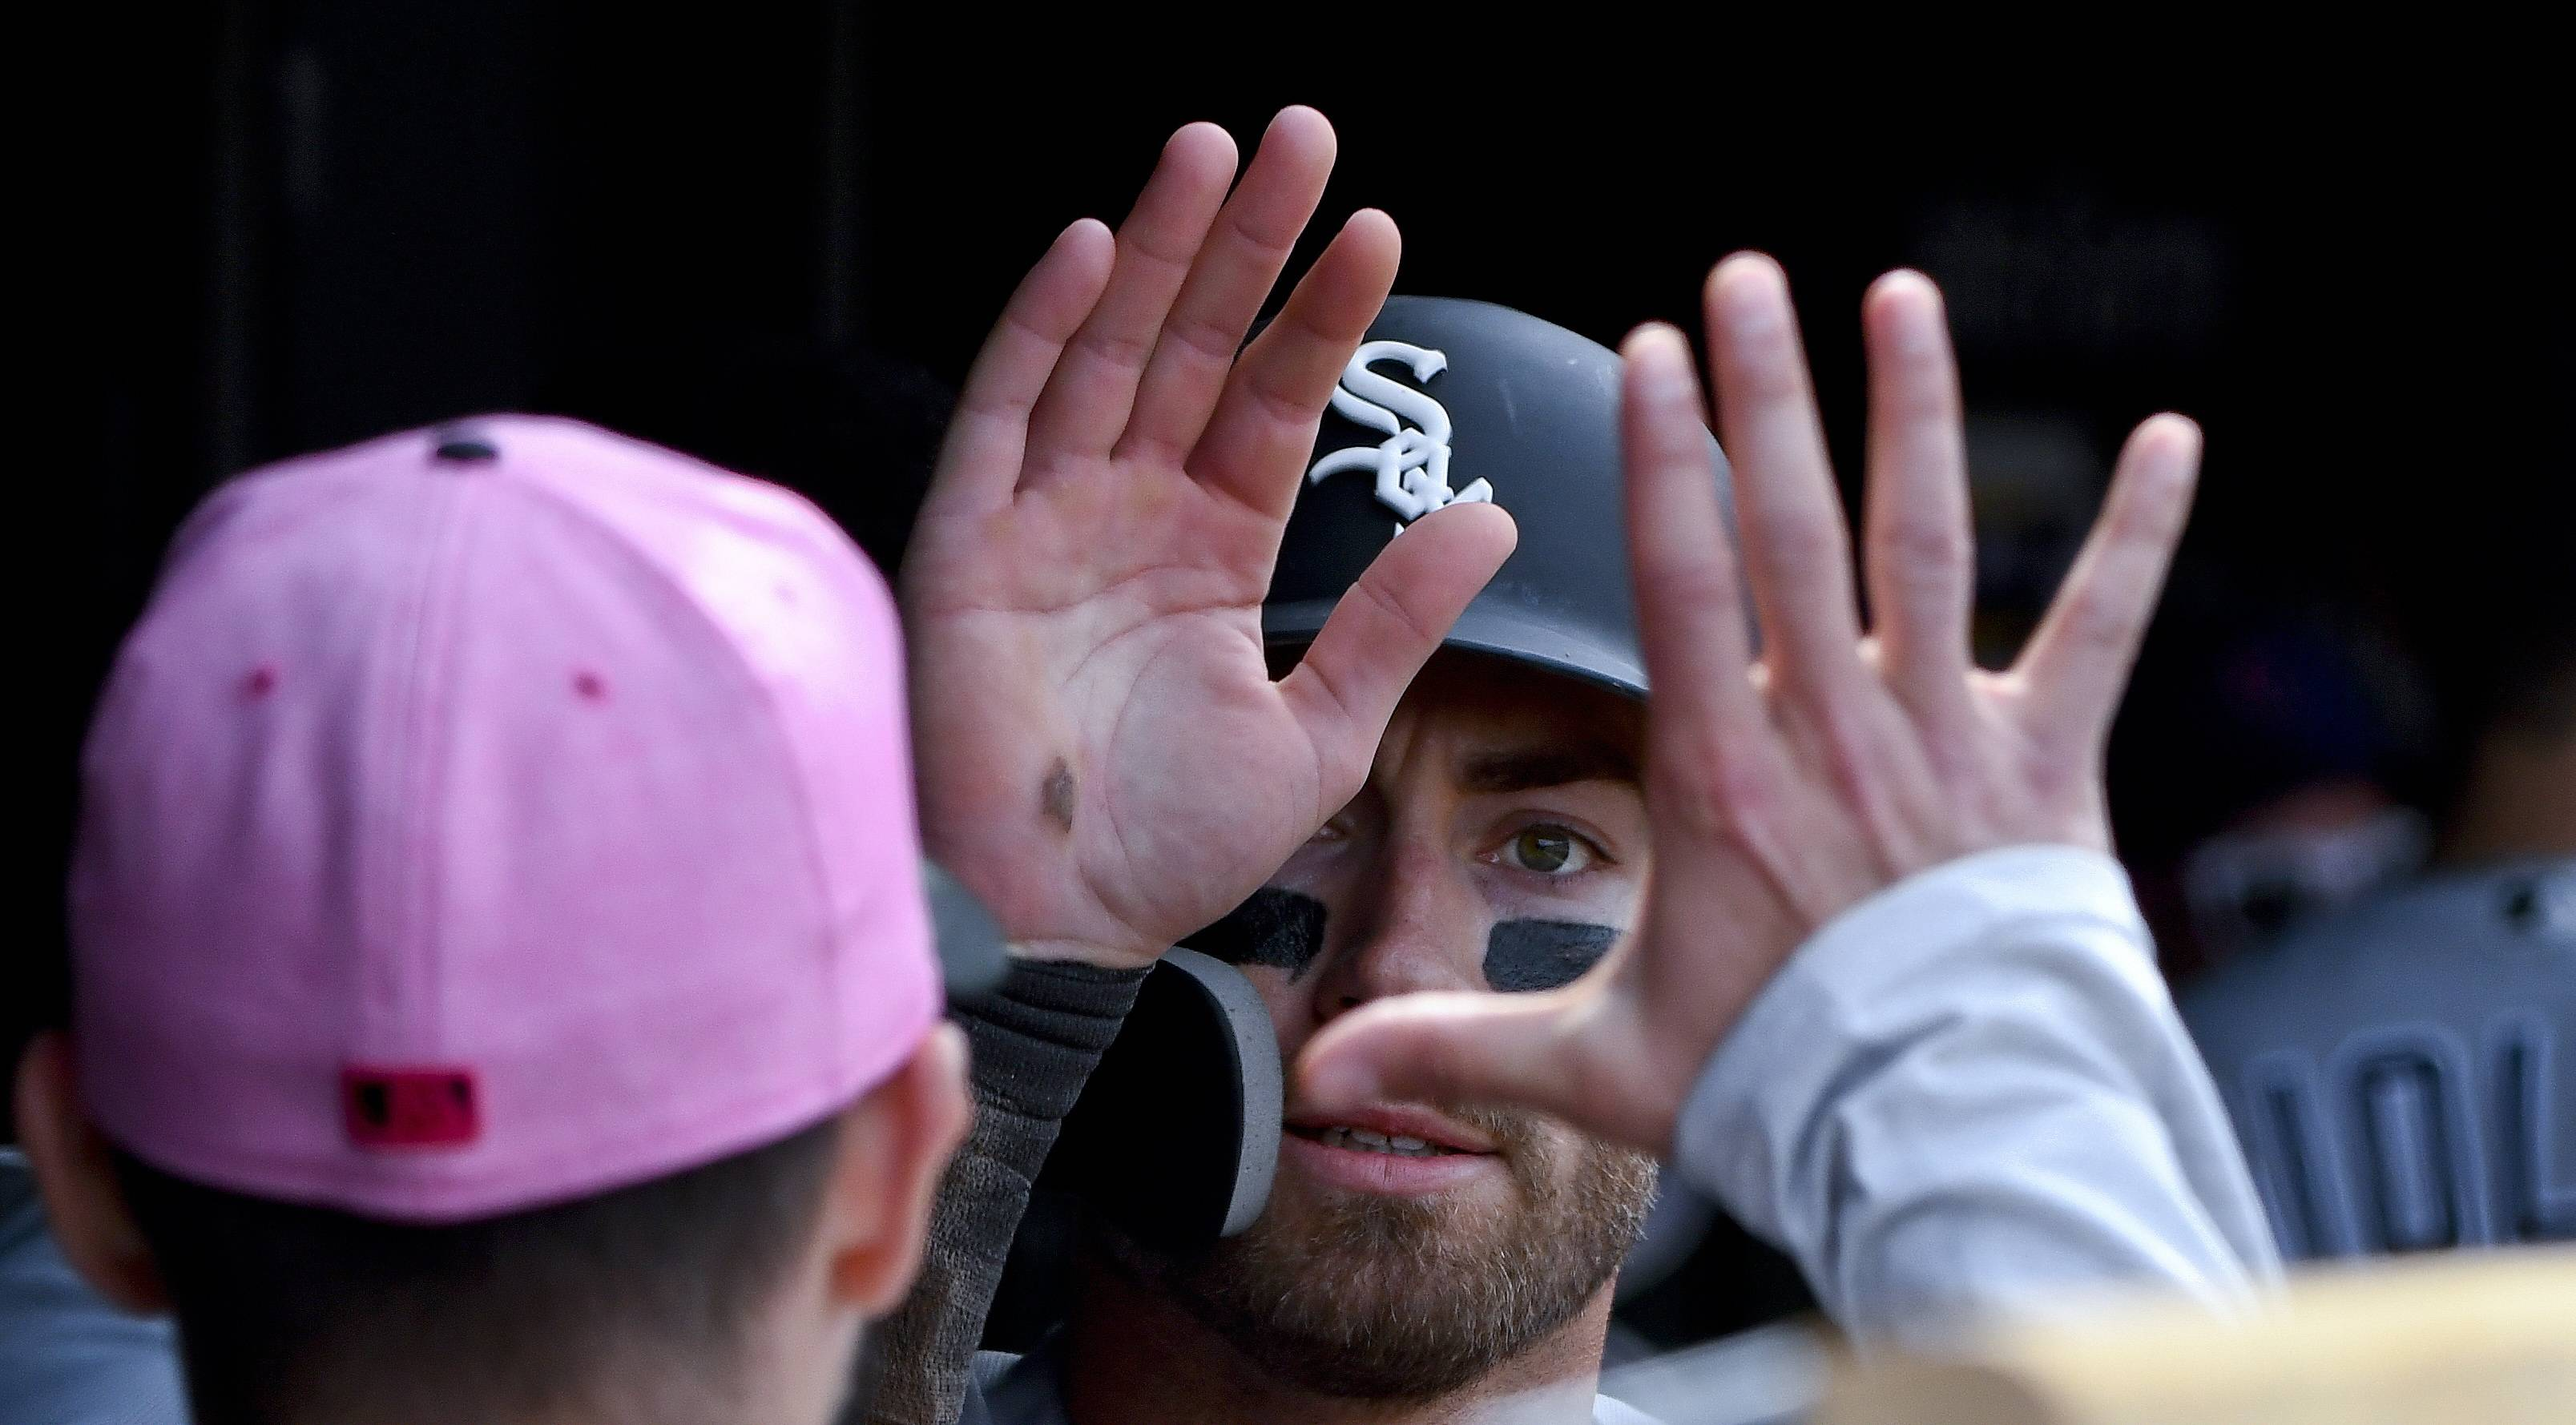 Chicago White Sox's Nicky Delmonico, center, celebrates in the dugout after he scored during the sixth inning of a baseball game against the Chicago Cubs on Sunday, May 13, 2018, in Chicago.